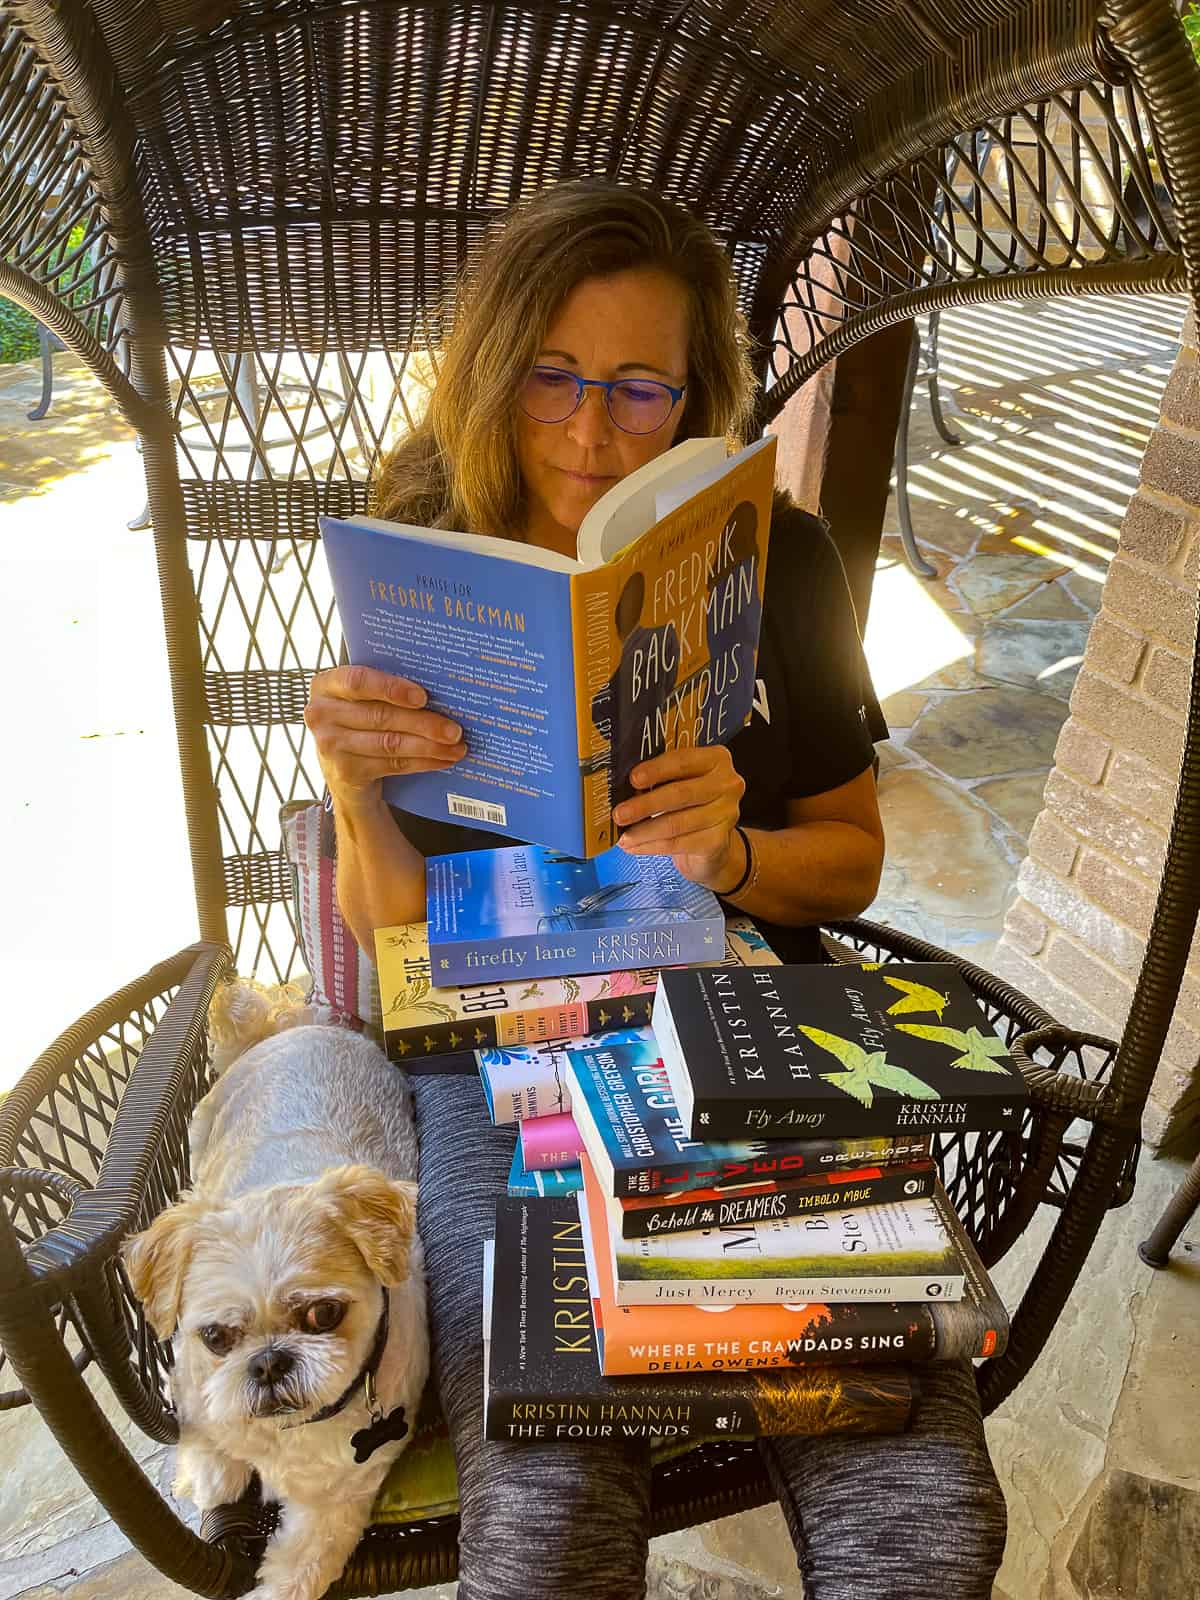 Me reading a book with a whole bunch of books on my lap, and my dog on the chair with me.